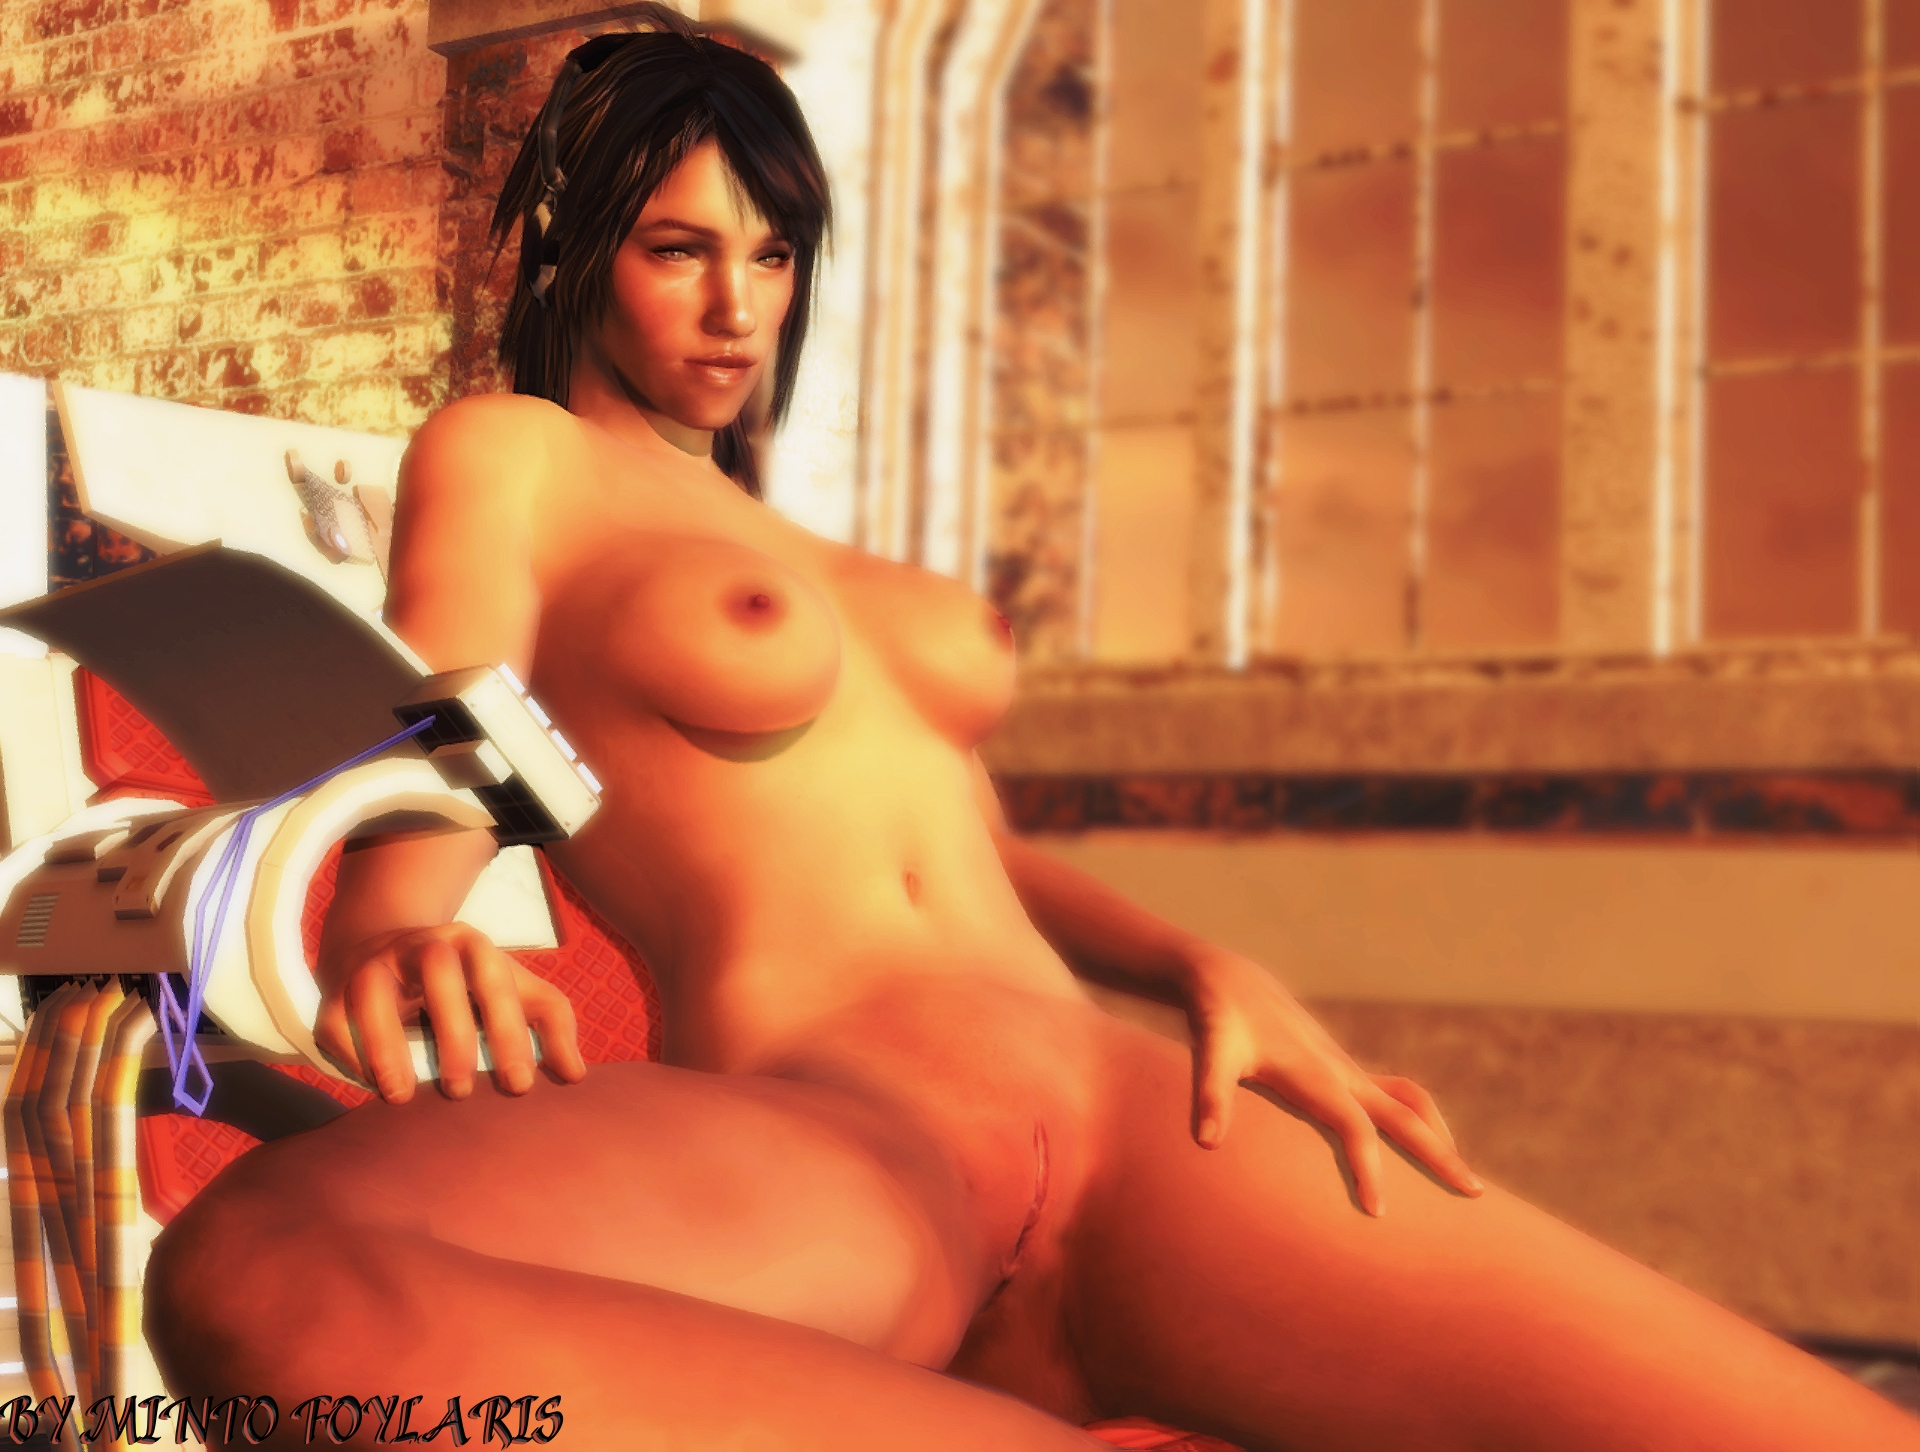 Assassin girl nude fuck sex tiny woman